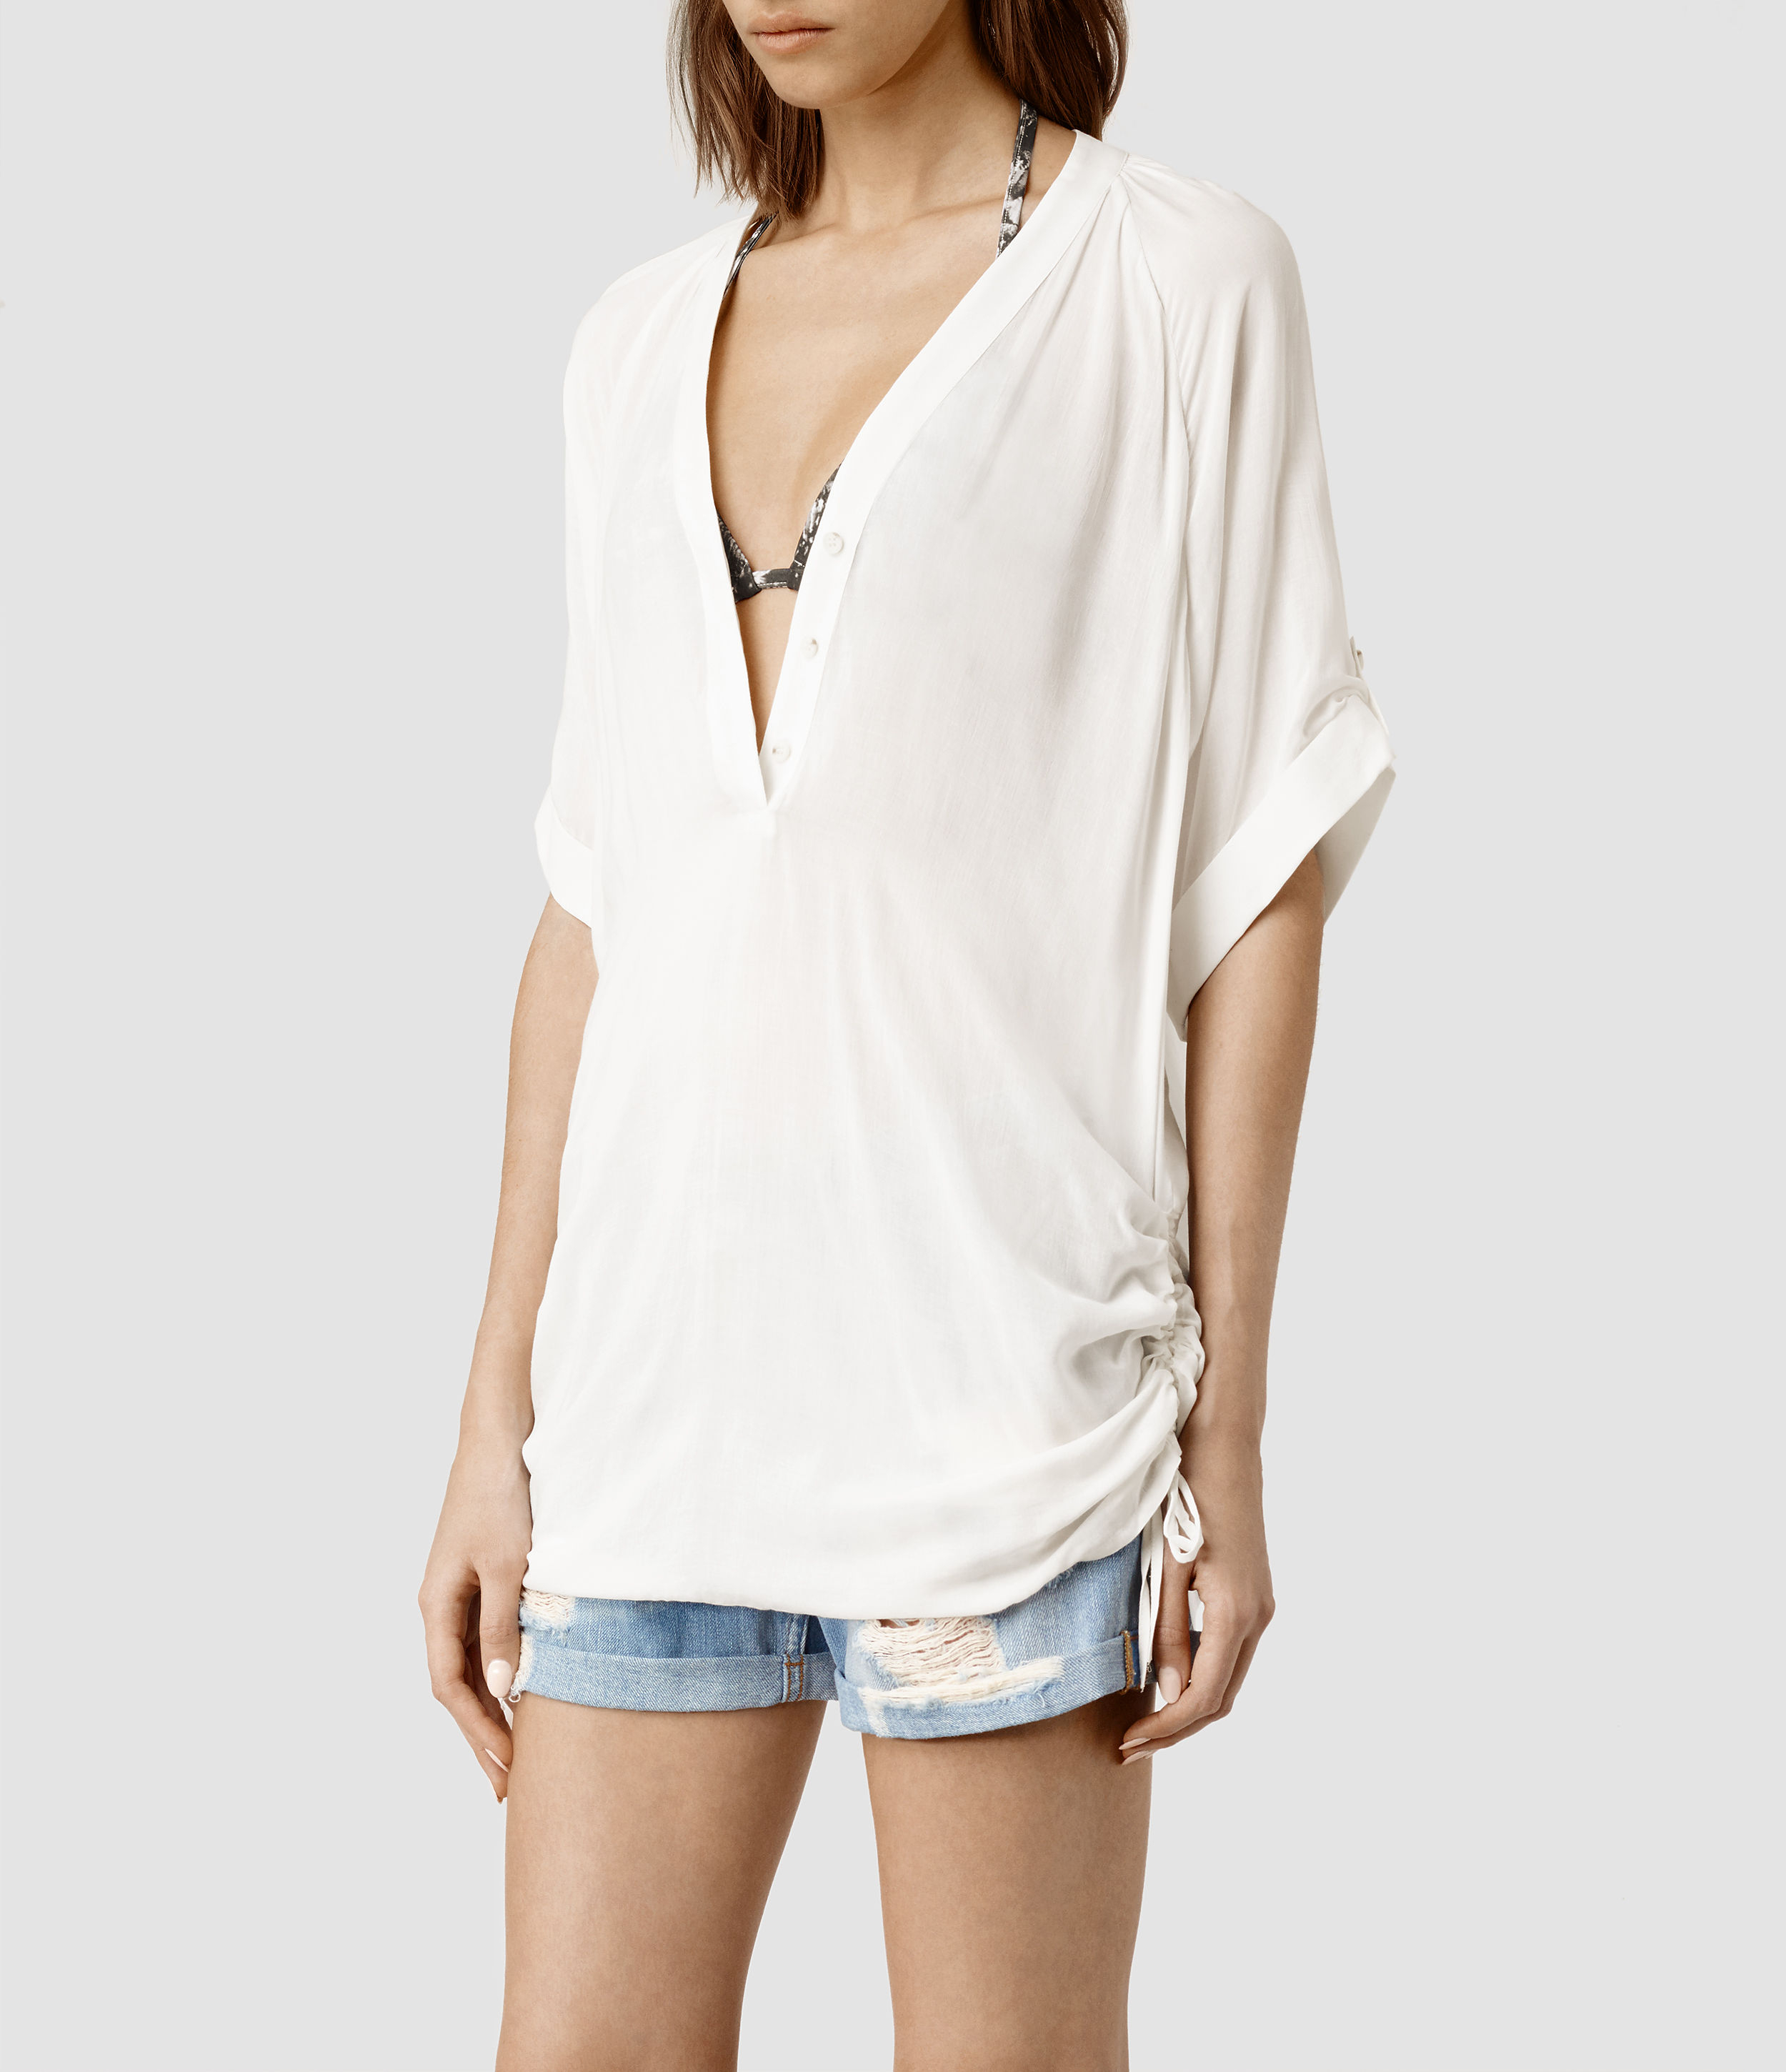 ef7e75abe9 Lyst - AllSaints Isle Top in White